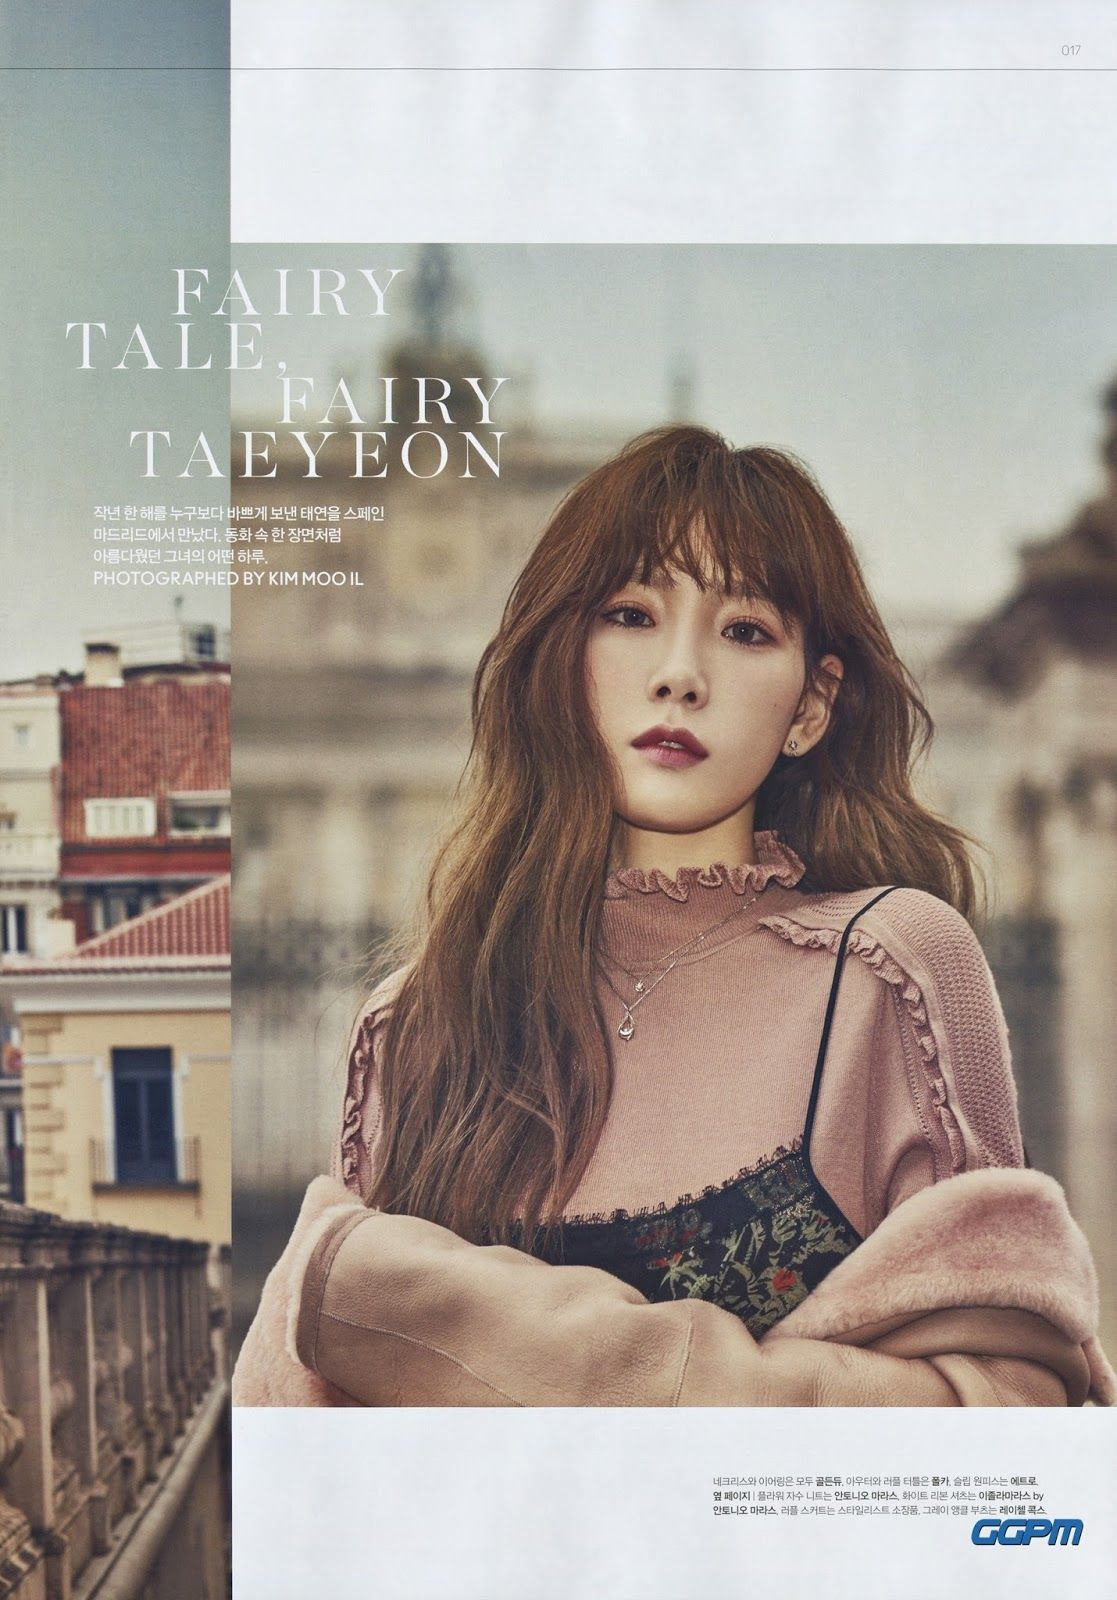 Taeyeon BEAUTY+ 「Fairy Tale, Fairy Taeyeon」 February.2017 - HQ SCANS (11PIC) • GGPM